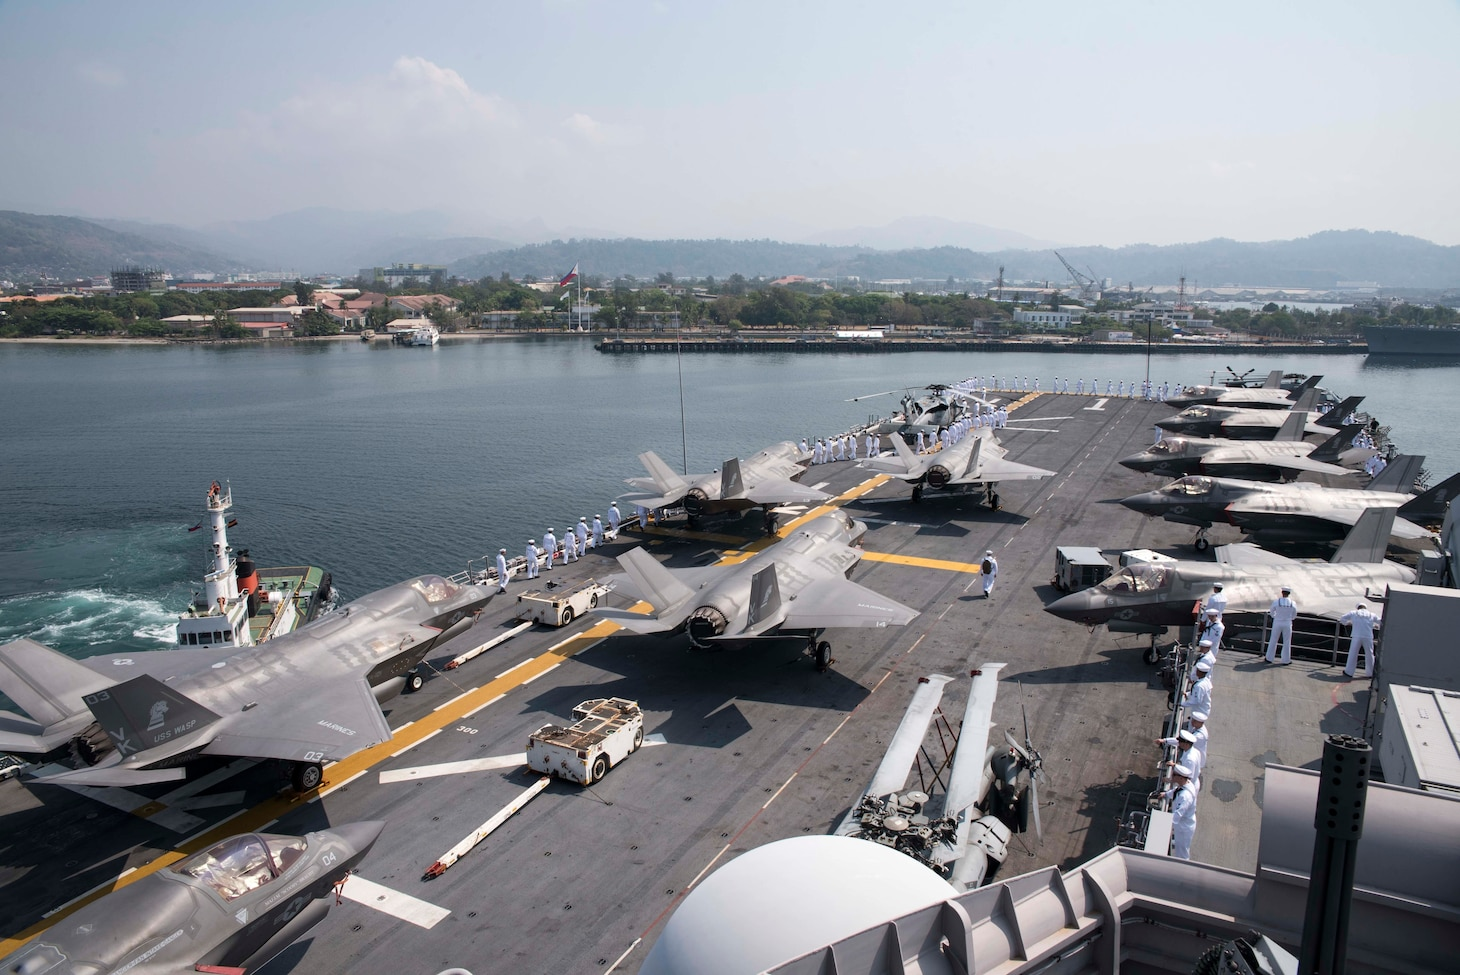 SUBIC BAY, PHILIPPINES (March 30, 2019) – Sailors aboard the amphibious assault ship USS Wasp (LHD 1) prepare to man the rails prior to arriving to Subic Bay in preparation of Exercise Balikatan. Exercise Balikatan, in its 35th iteration, is an annual U.S., Philippine military training exercise focused on a variety of missions, including humanitarian assistance and disaster relief, counter-terrorism, and other combined military operations.